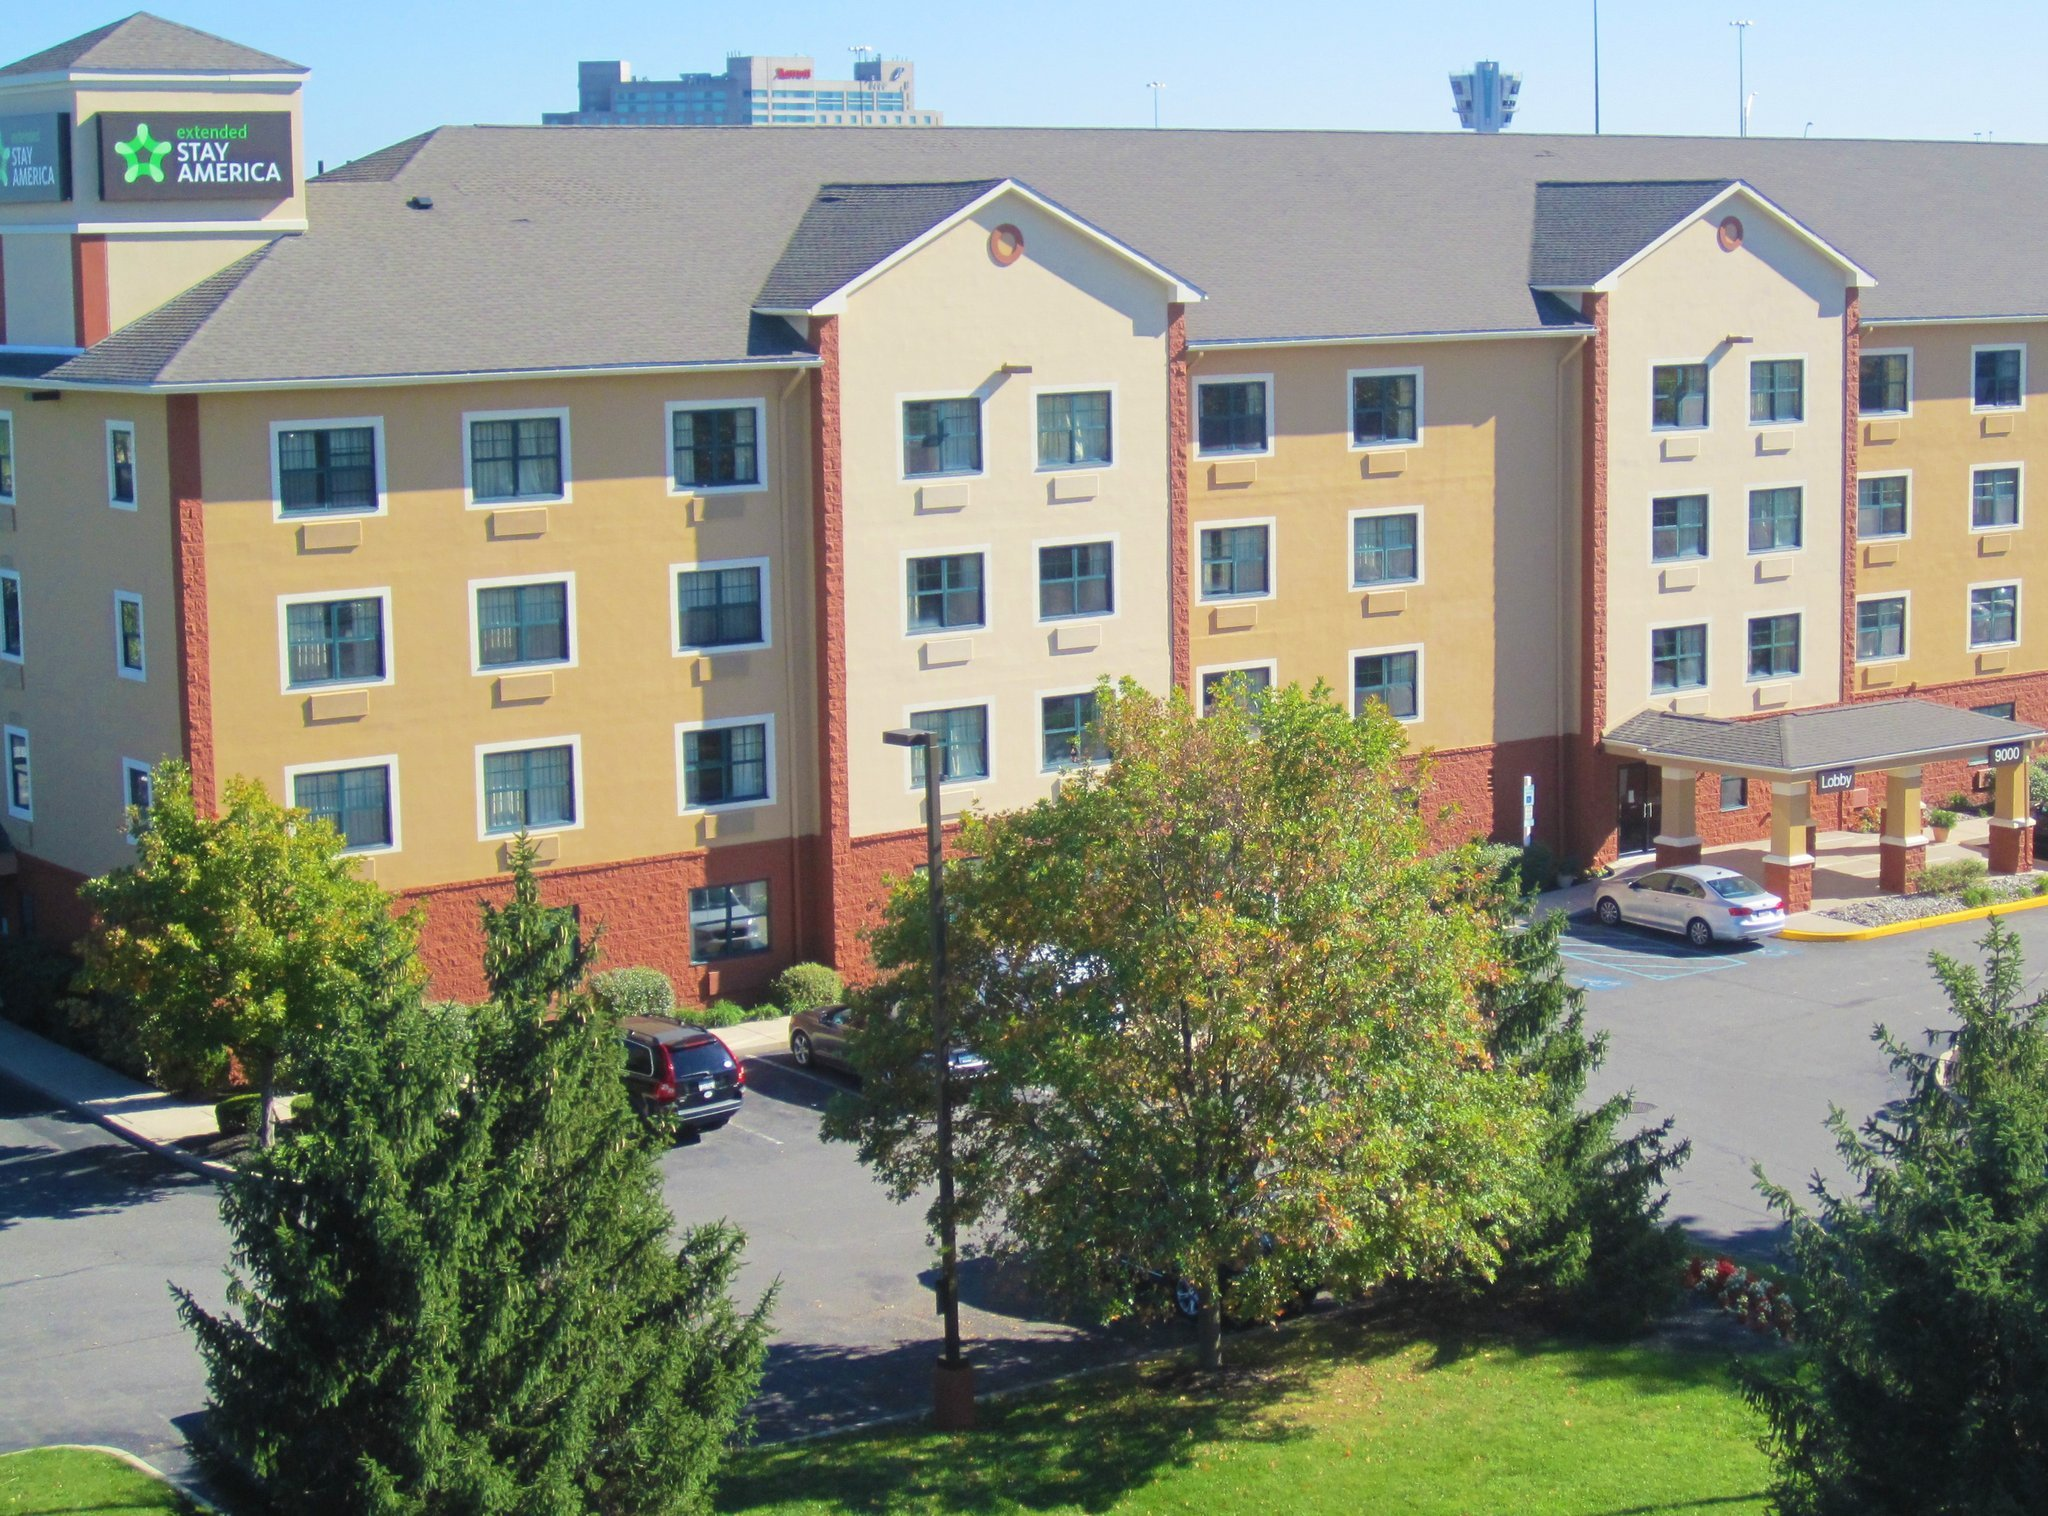 Extended Stay America - Philadelphia - Airport - Tinicum Blvd.